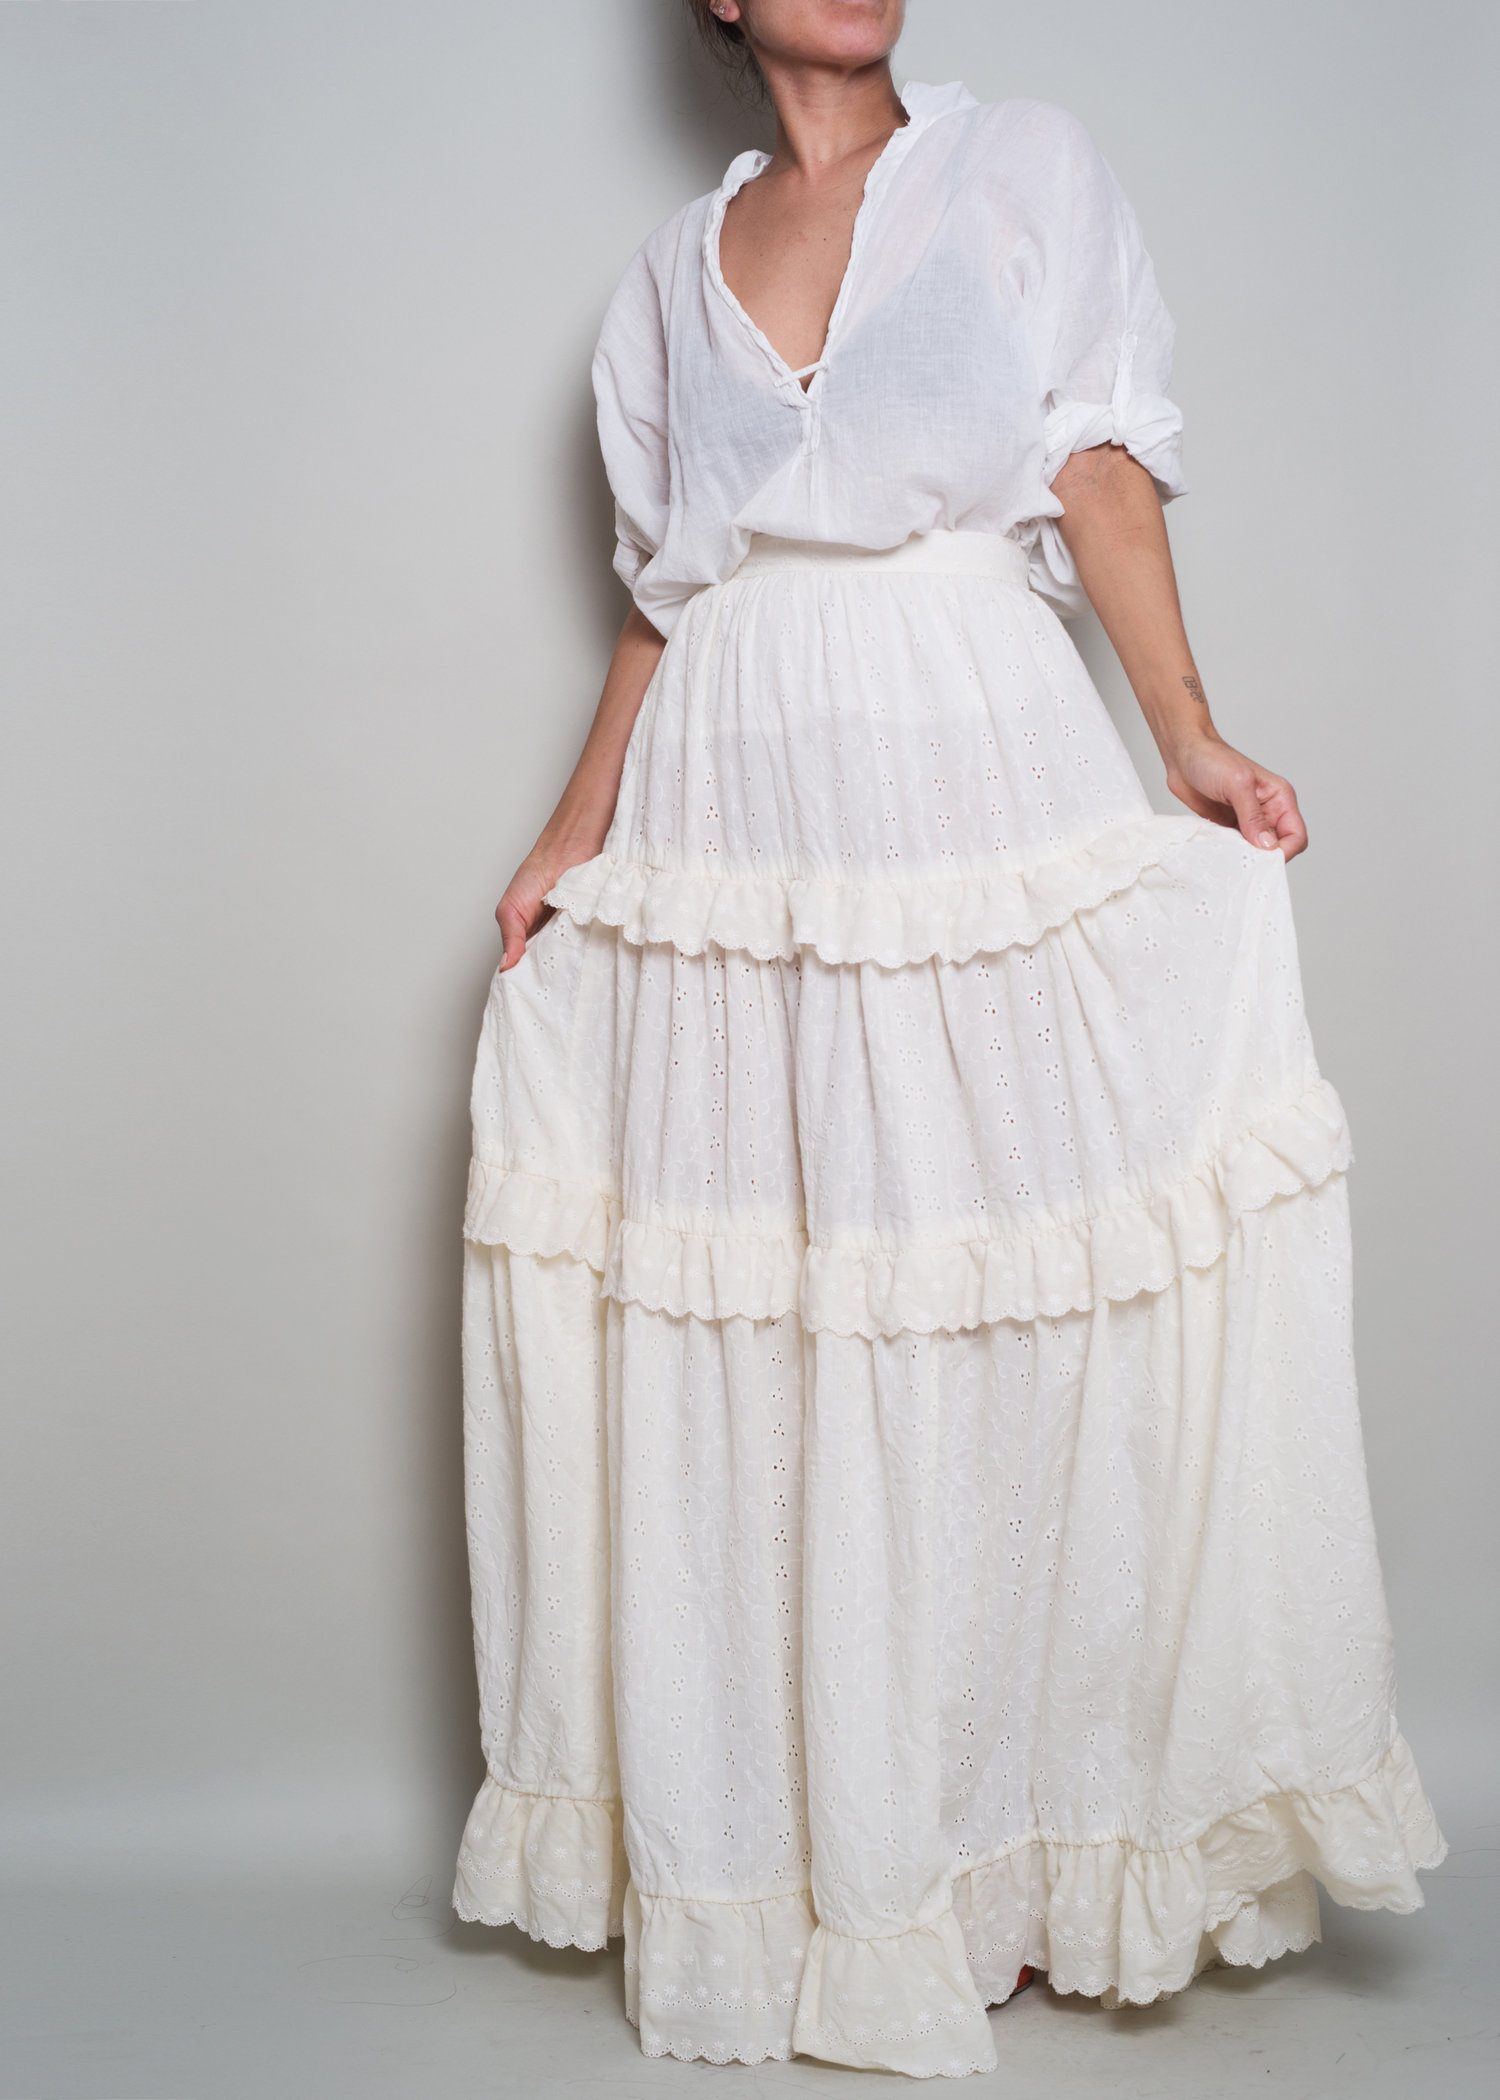 840795921 1970s// Ivory Eyelet Embroidery Tiered Prairie Maxi Skirt// XS — A ...